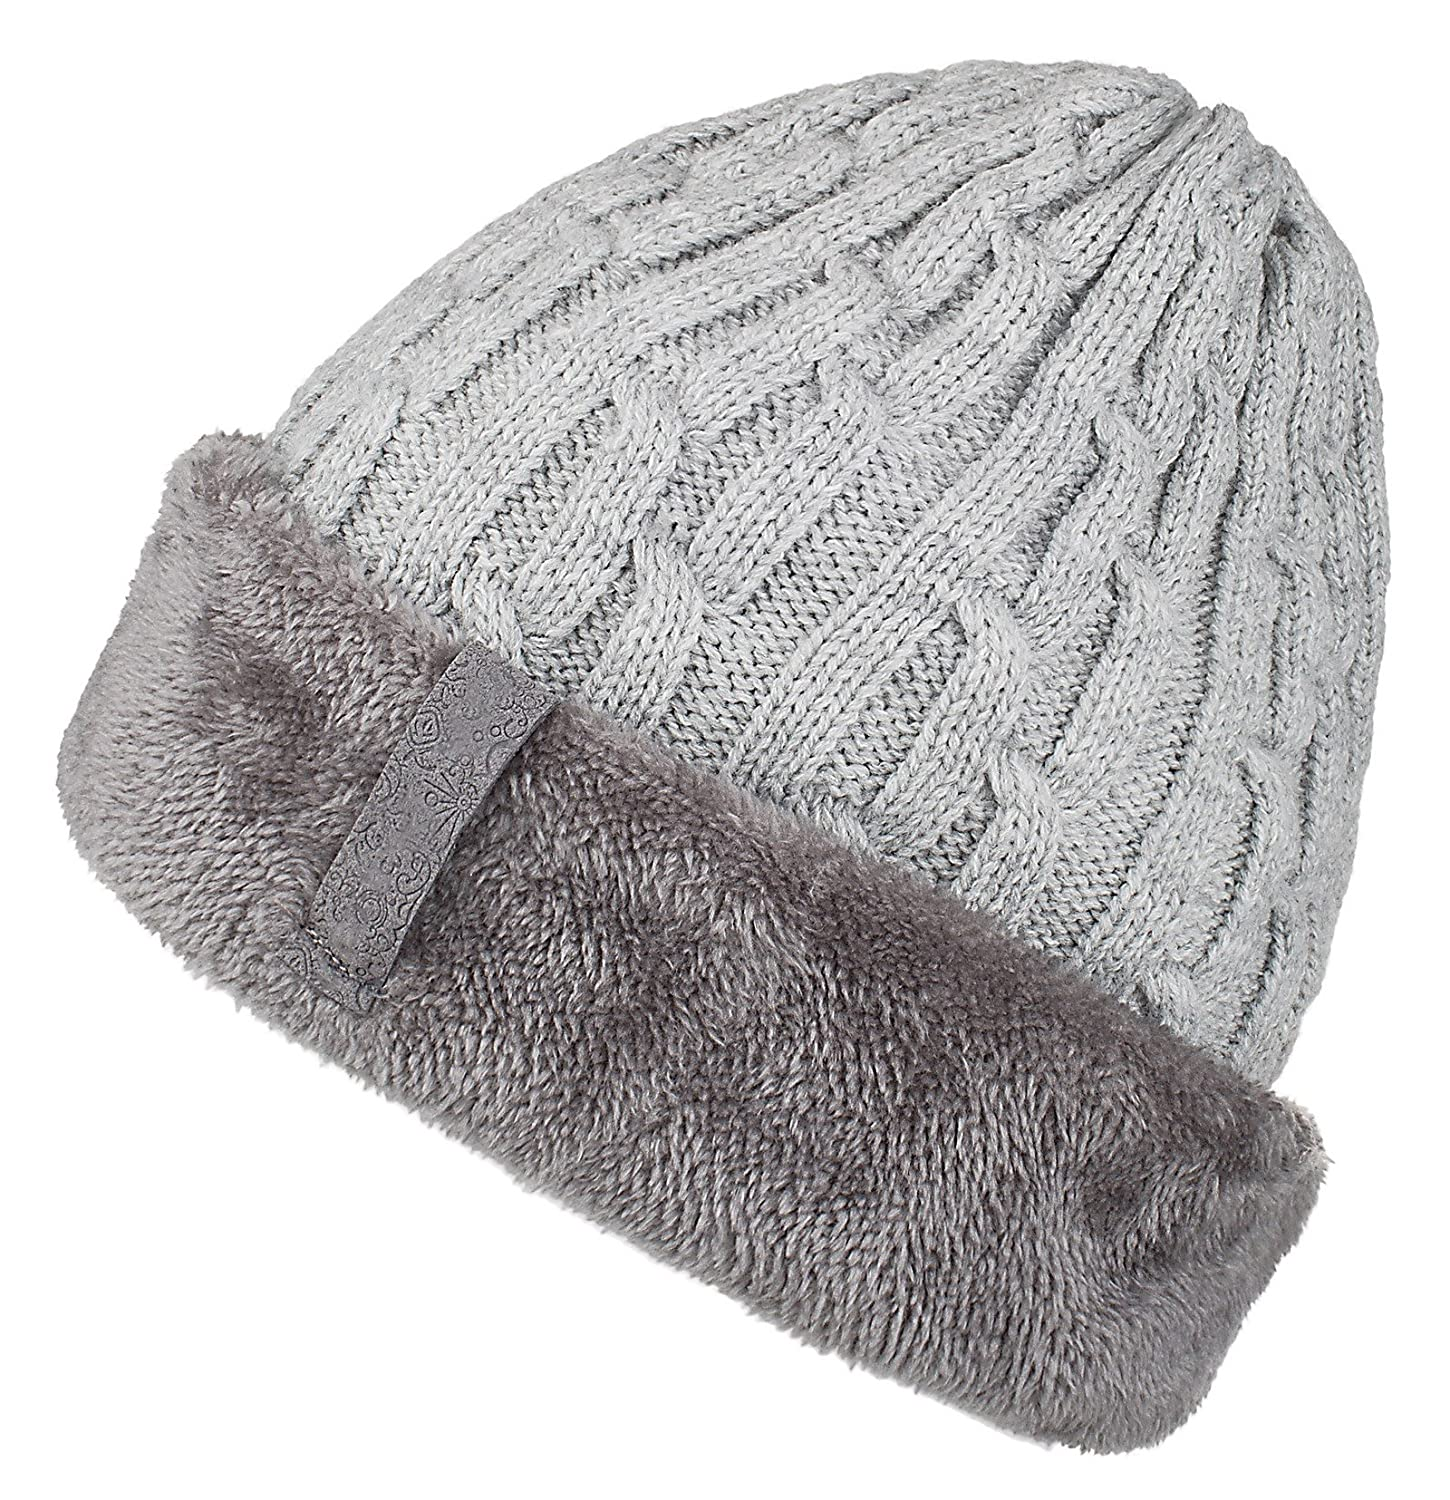 Spikerking Mens Knitting Caps Winter Hats Beanie Skull Hat with Thick  Lining f96bed5a7ce